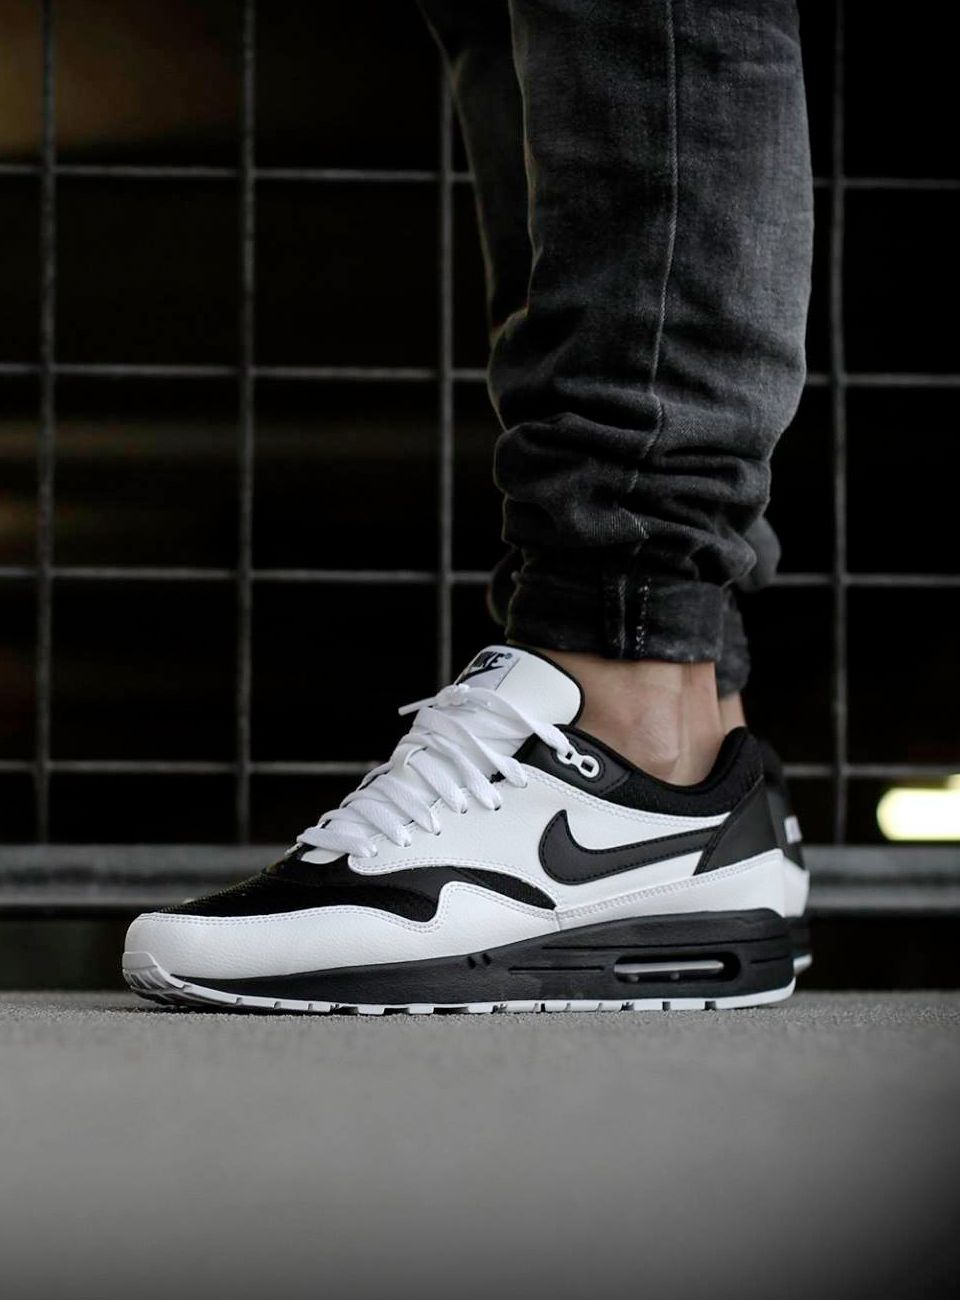 separation shoes 598f5 b30c9 These Nike ID Air Max 1 look like stormtrooper shoes!  airmax1  nikeID   sneakers